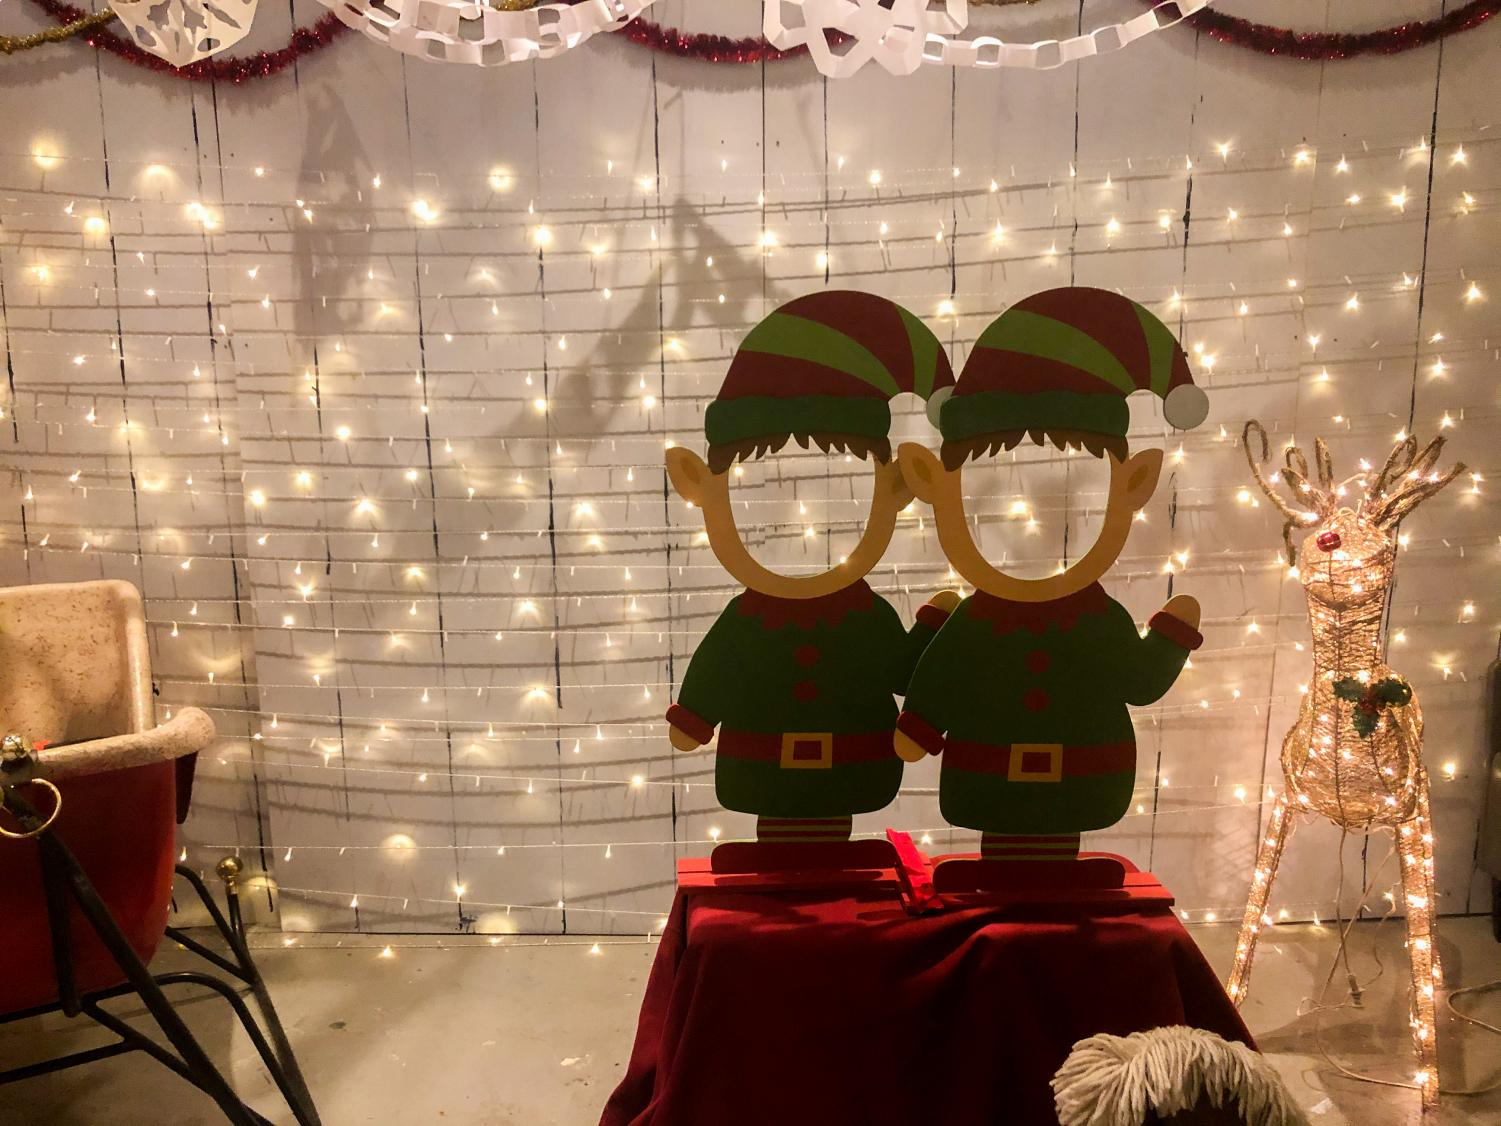 The venue provides a special opportunity where attendees can take pictures with elf body cutouts. The bar is furnished with holiday decorations inspired by the popular film.